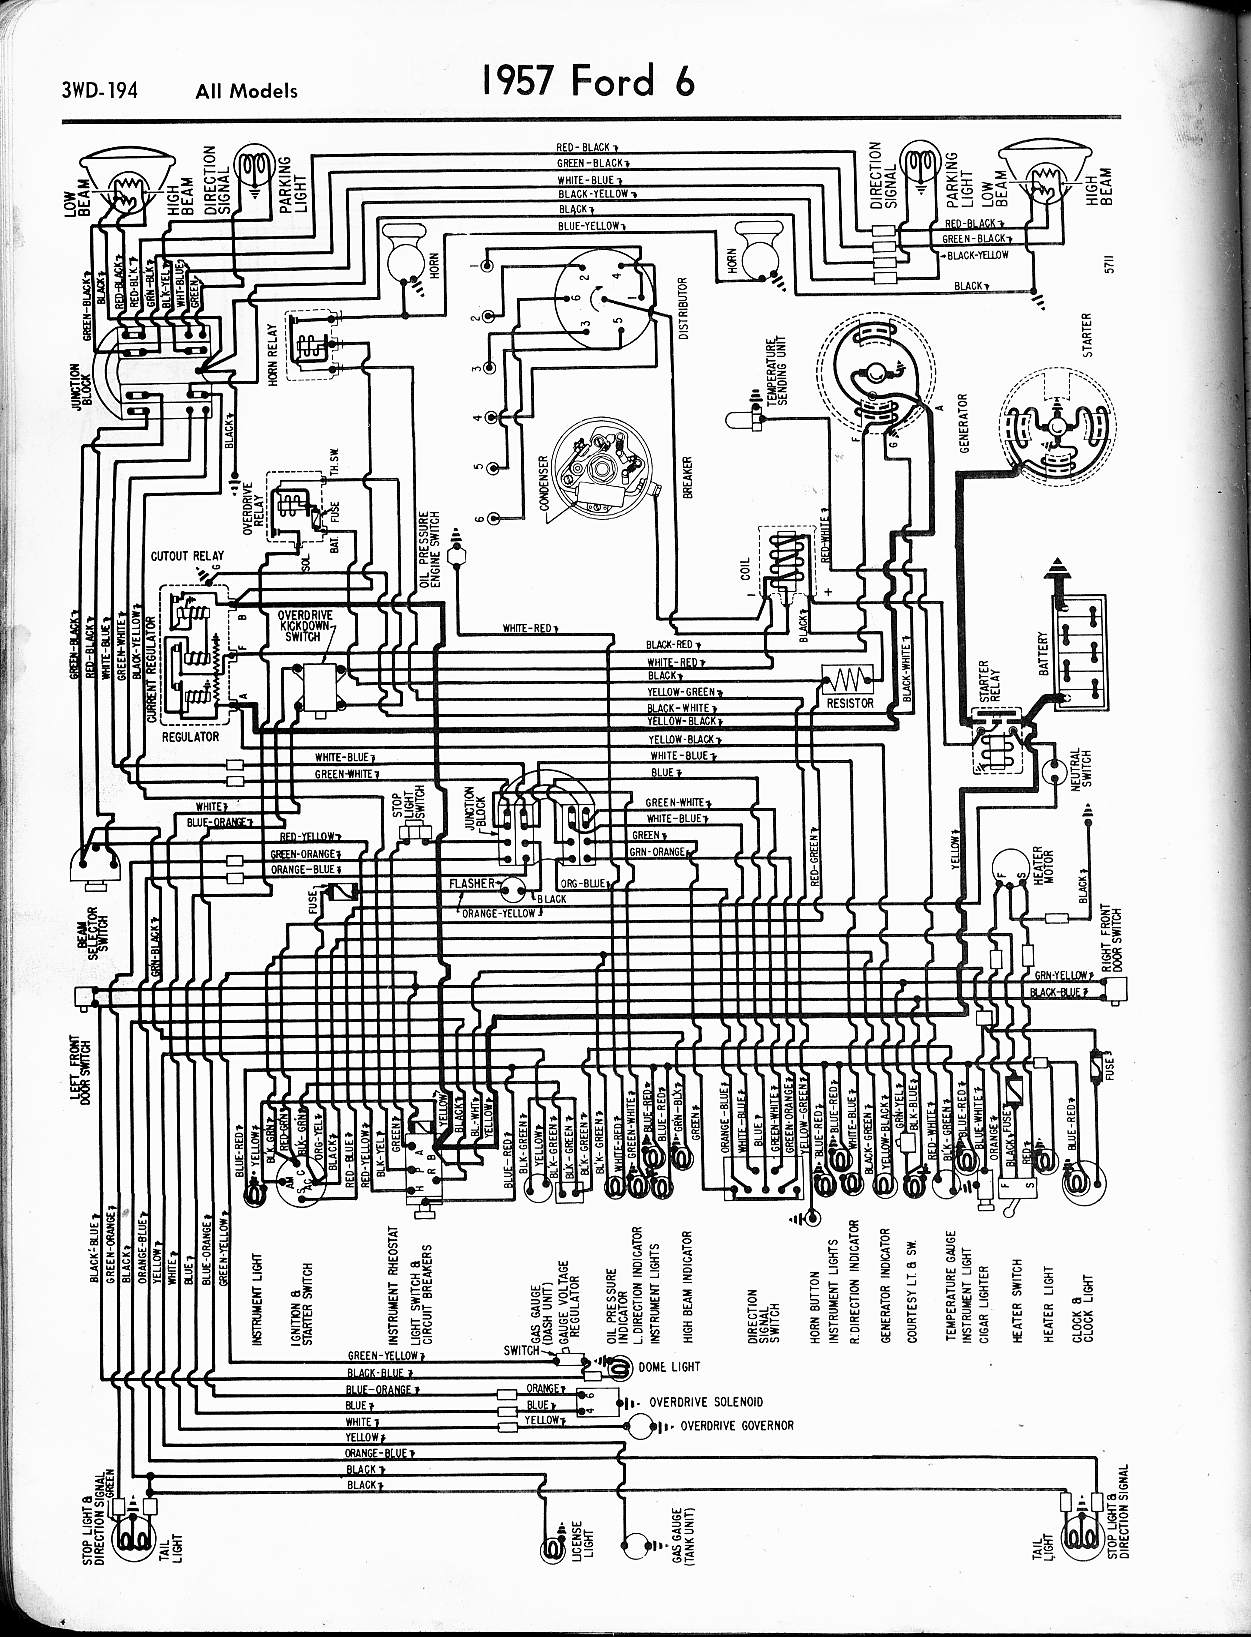 1957 ford thunderbird wiring schematic block and schematic diagrams u2022 rh lazysupply co 1958 chevy truck ignition switch wiring diagram 1958 chevy truck ignition switch wiring diagram